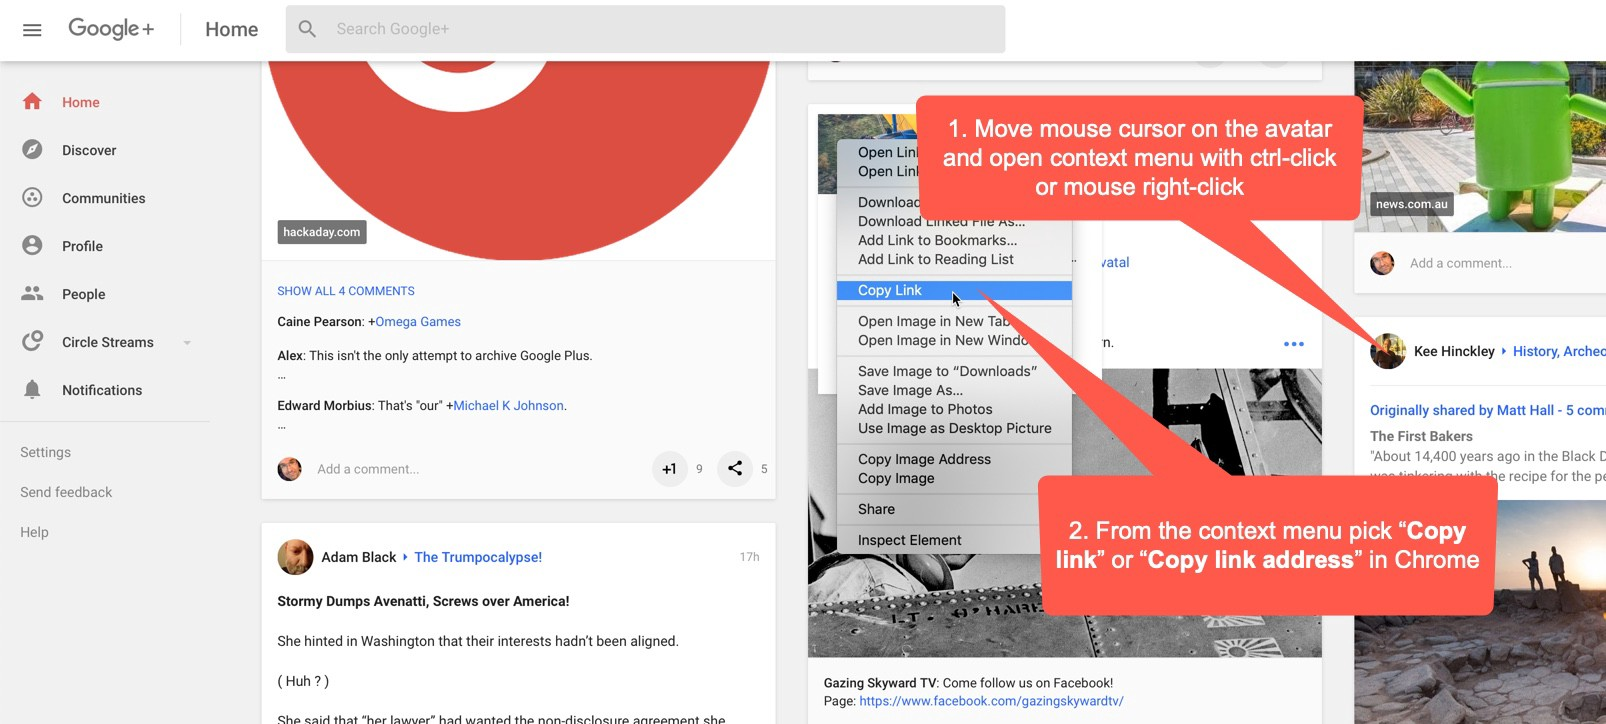 Where to get Google+ community, profile or page URL?